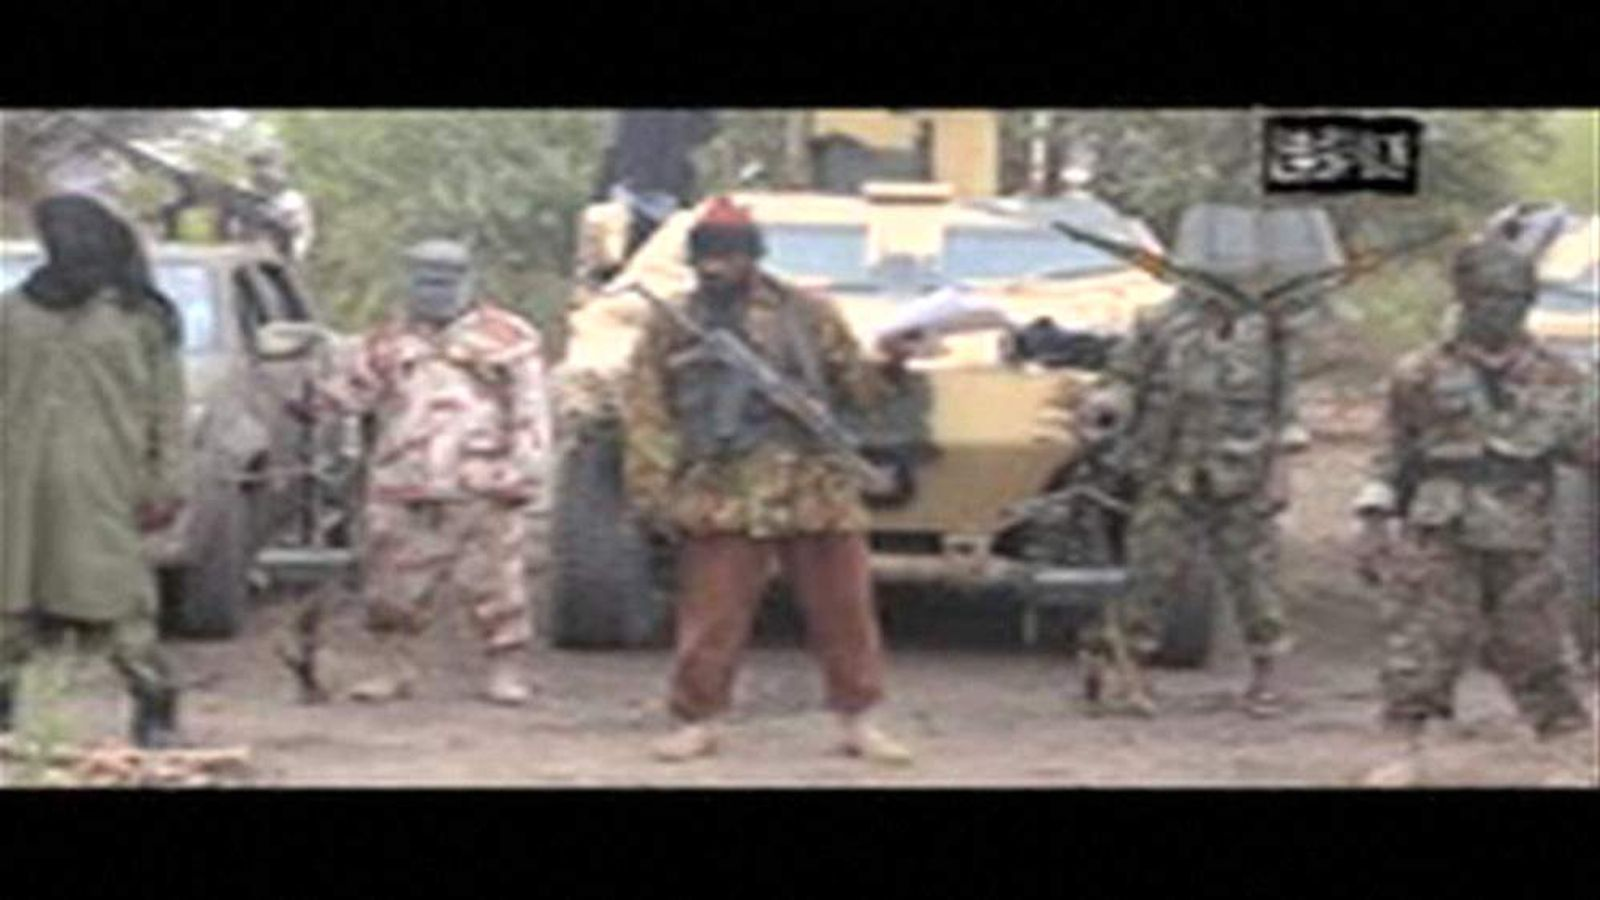 Boko Haram claims responsibility for mass schoolgirl abduction